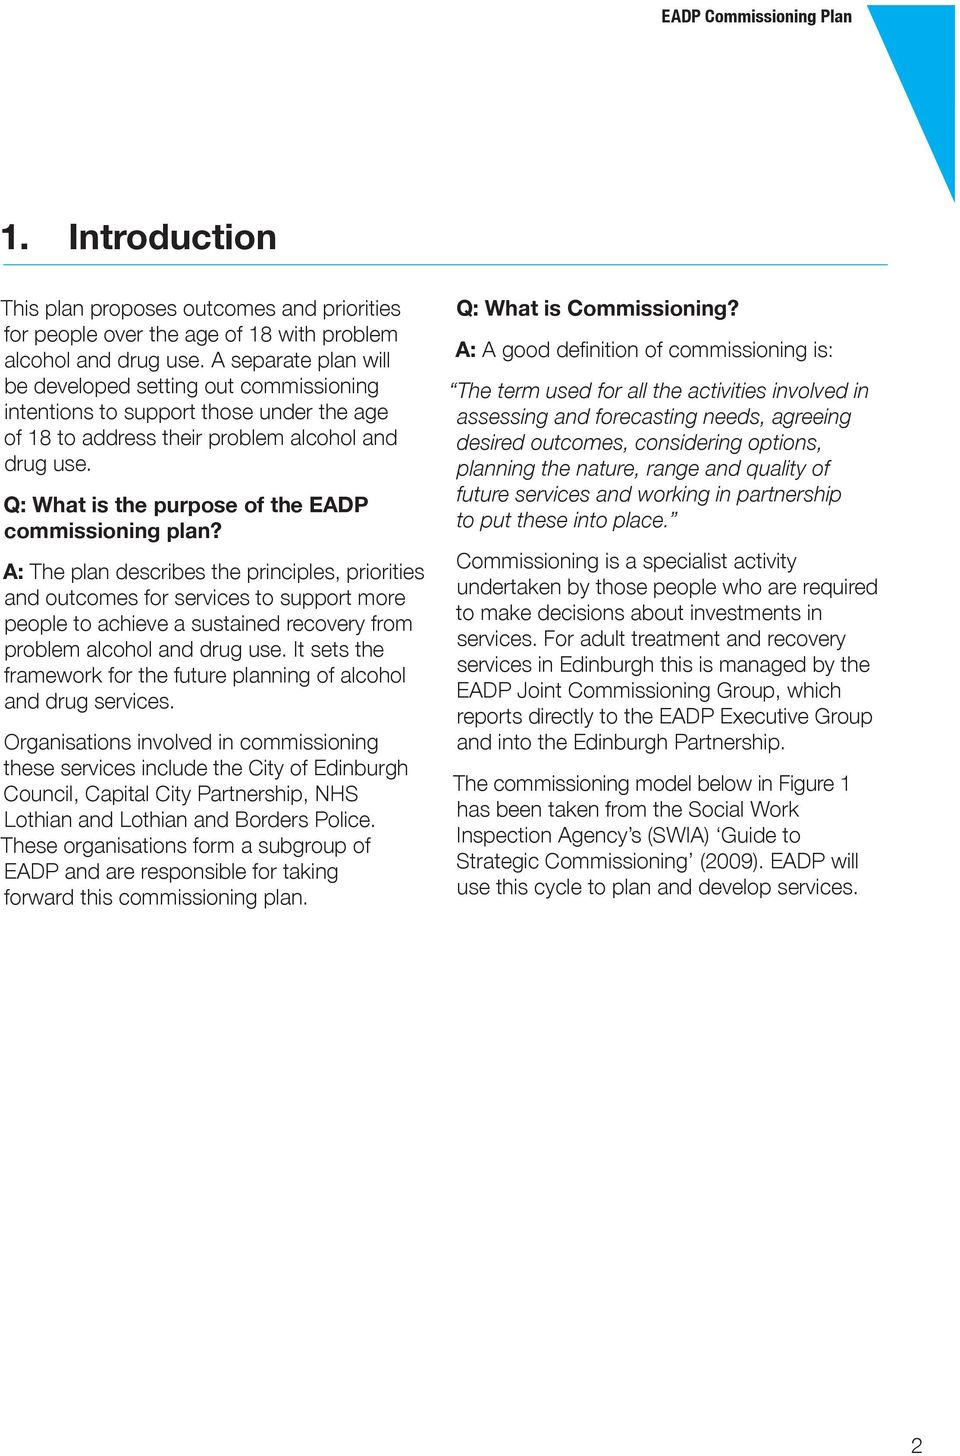 Q: What is the purpose of the EADP commissioning plan?